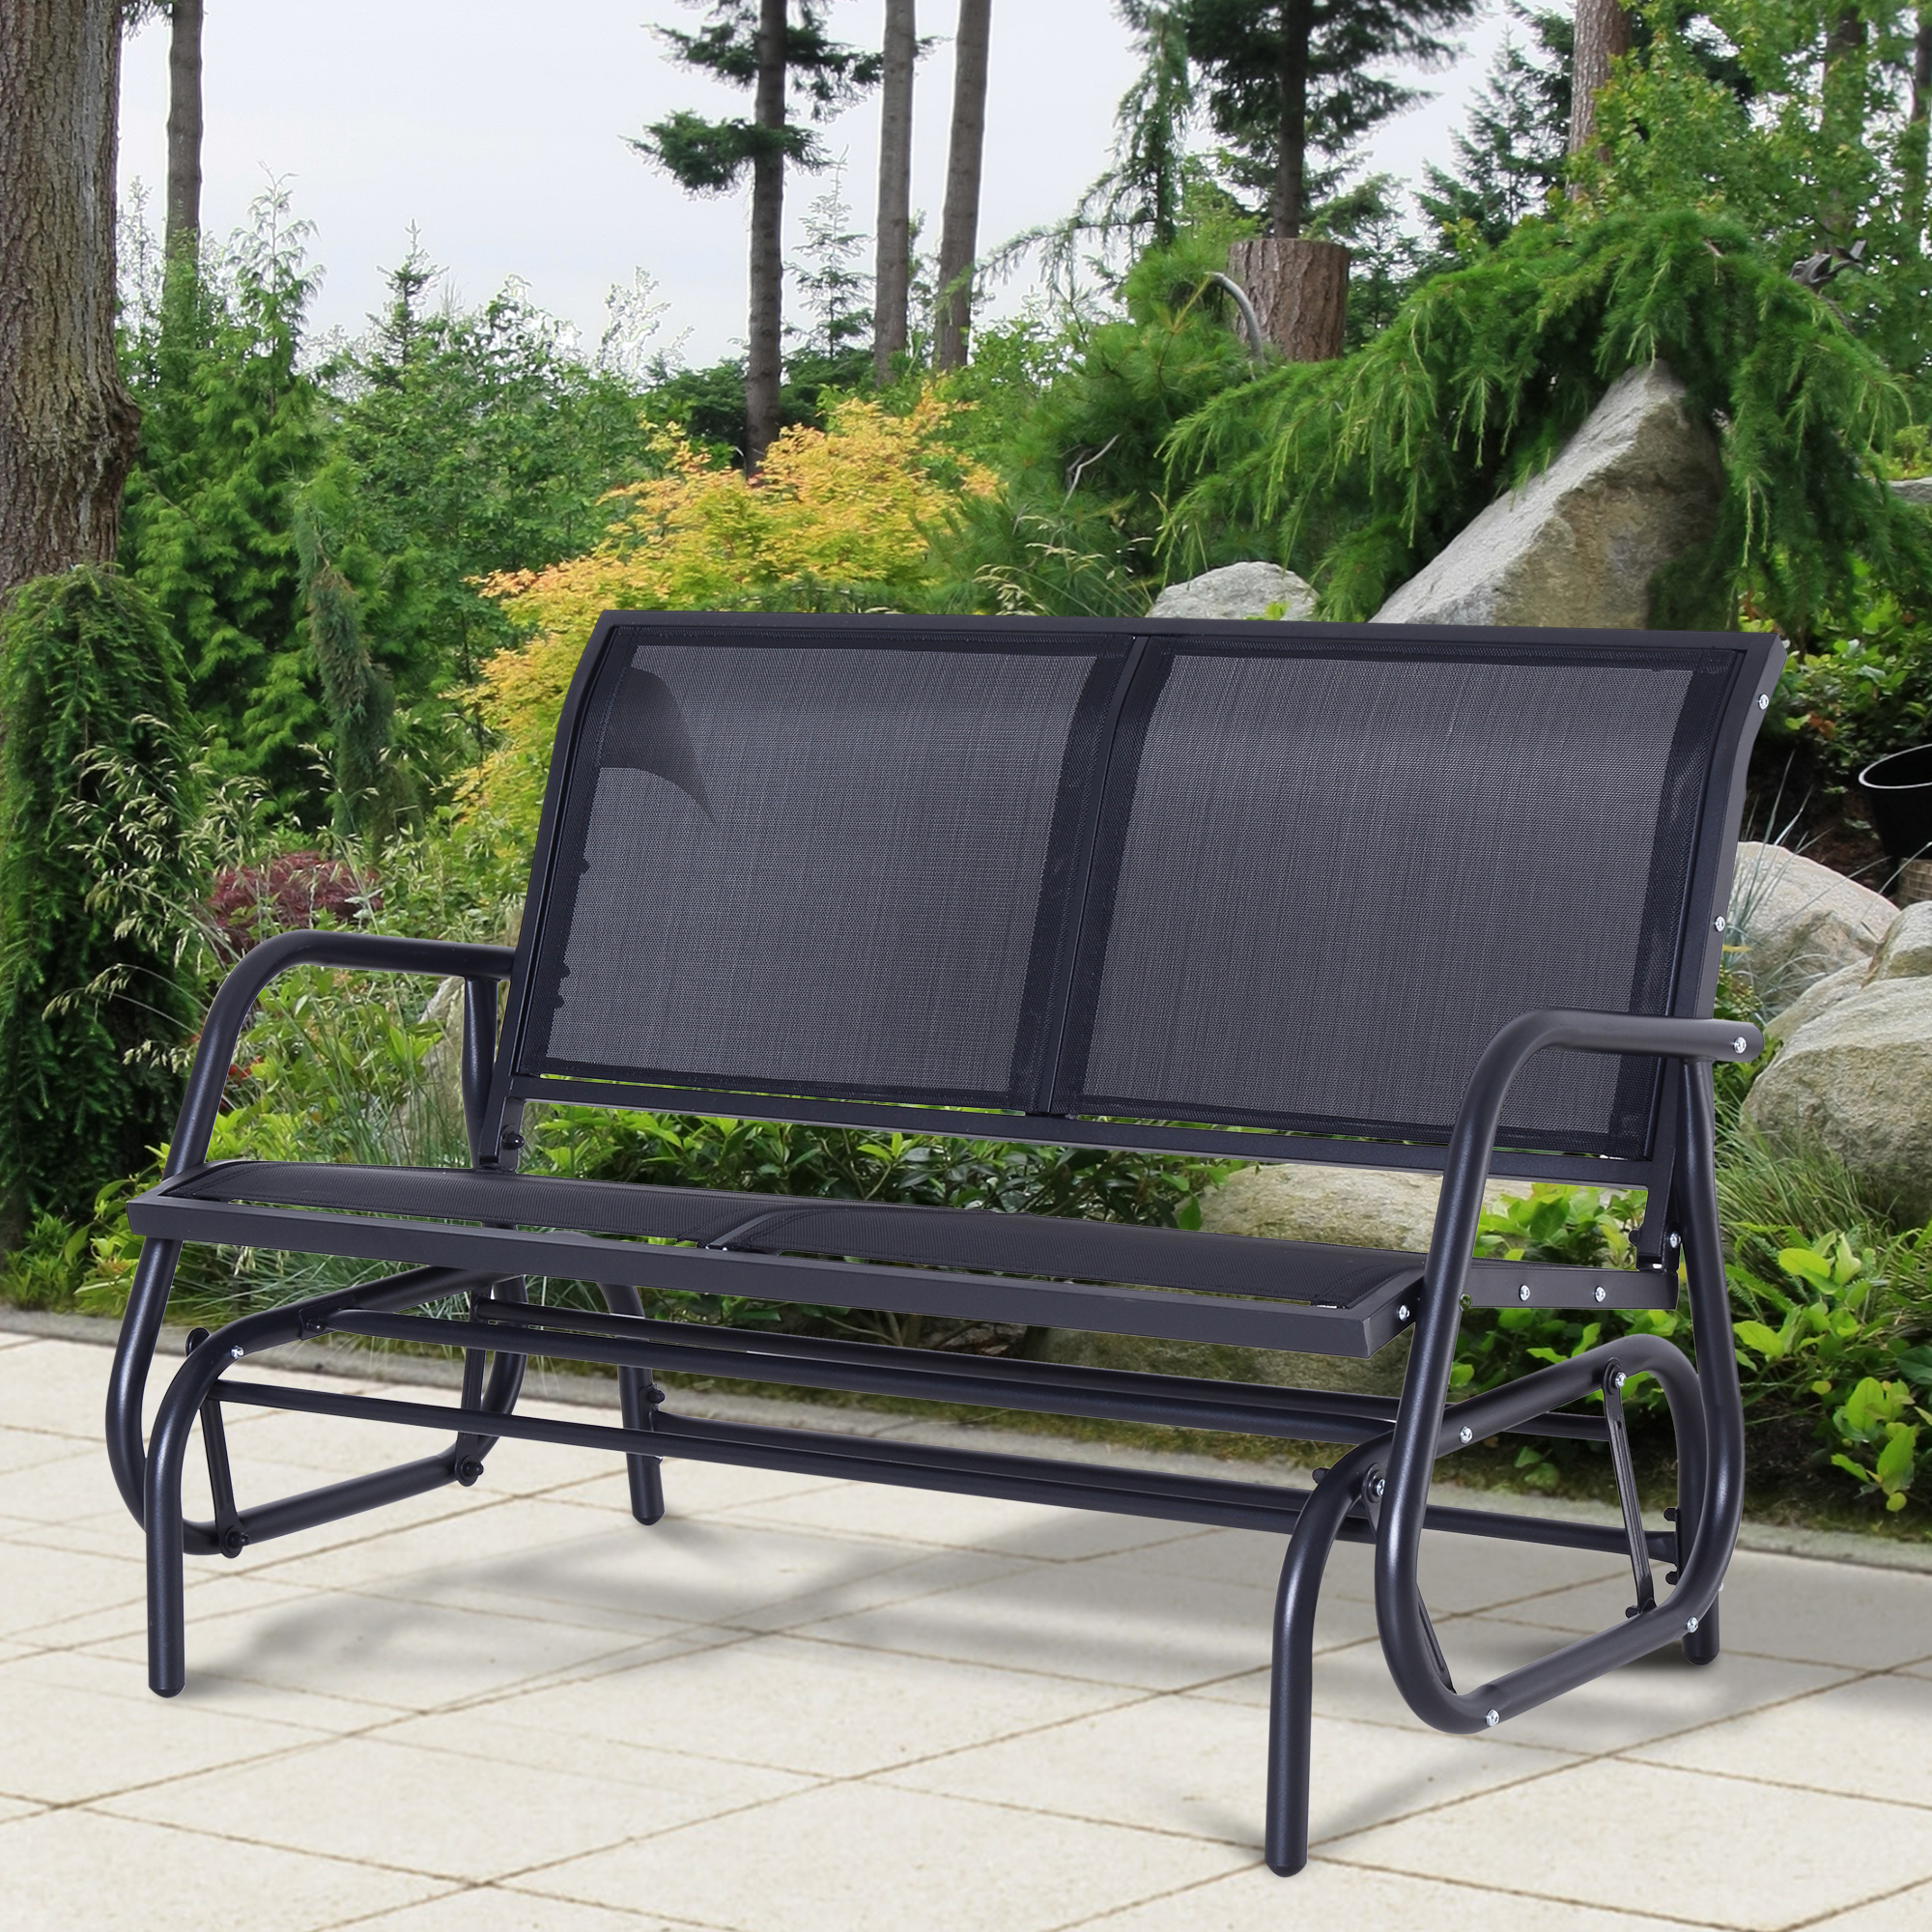 Details About Outsunny Patio Garden Glider Bench 2 Person Double Swing  Chair Rocker Deck Black Within Recent 1 Person Antique Black Steel Outdoor Gliders (View 9 of 25)